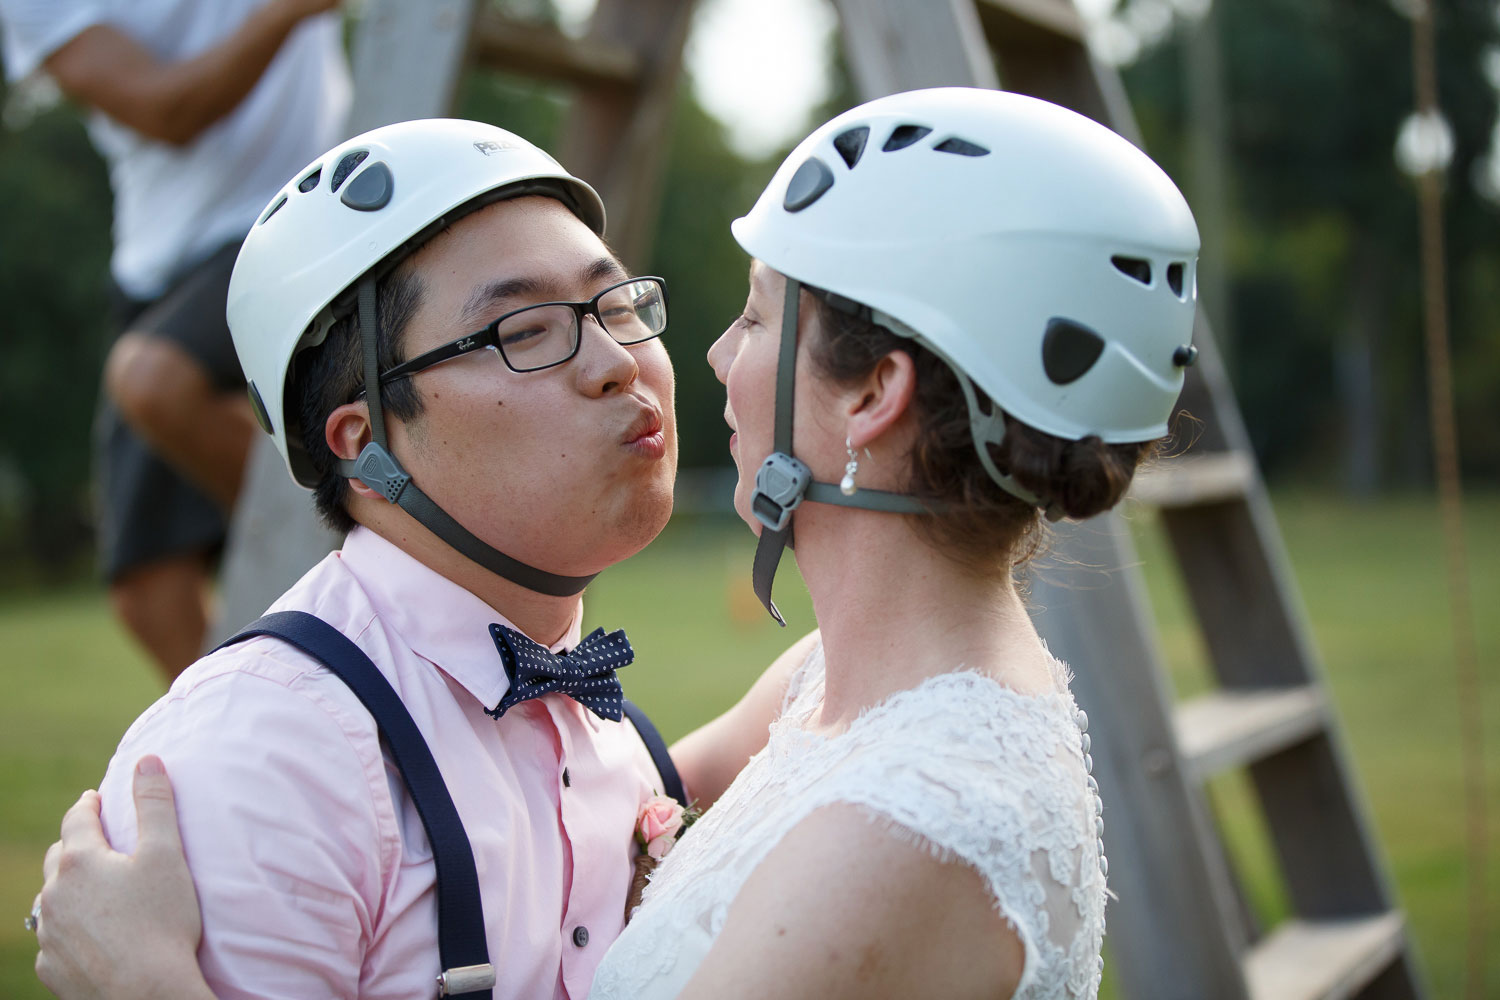 wedding zipline kiss annapolis wedding photographer